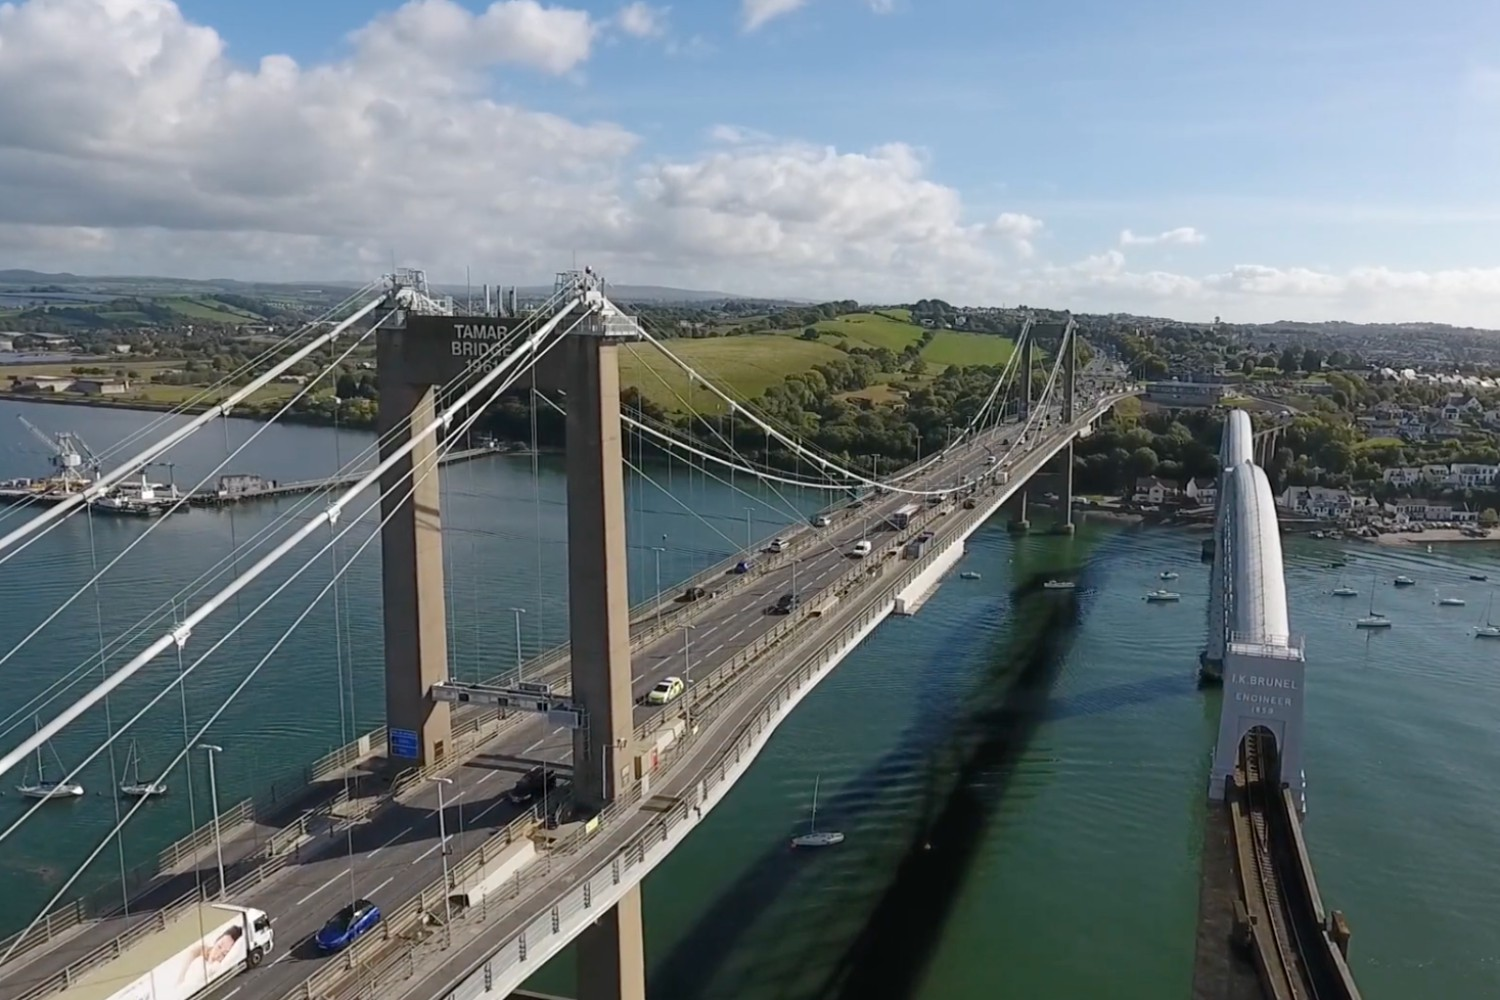 Two new lanes have been added to the Tamar Bridge - a feat of unprecedented skill.